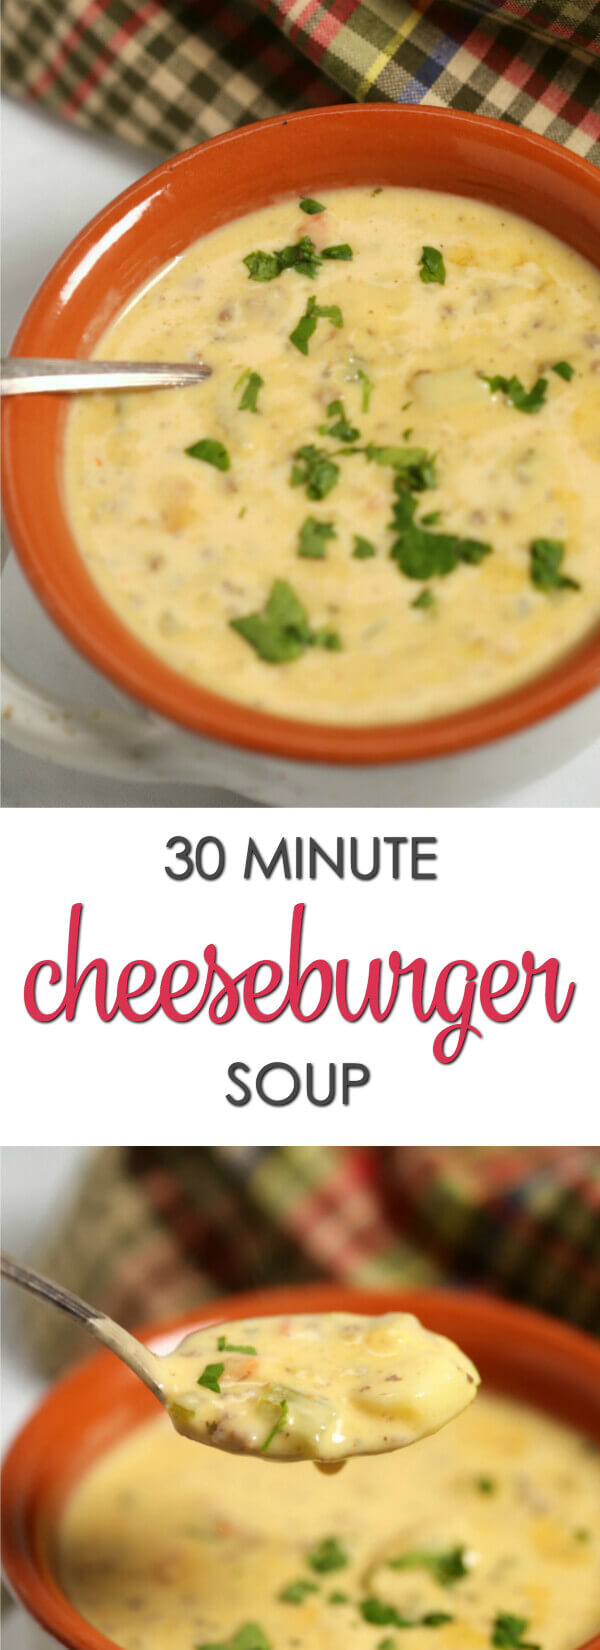 This easy Cheeseburger Soup recipe is one of my favorite 30 minute recipes. It's packed with flavor and tastes just like a regular cheeseburger! #itisakeeper #recipe #soup